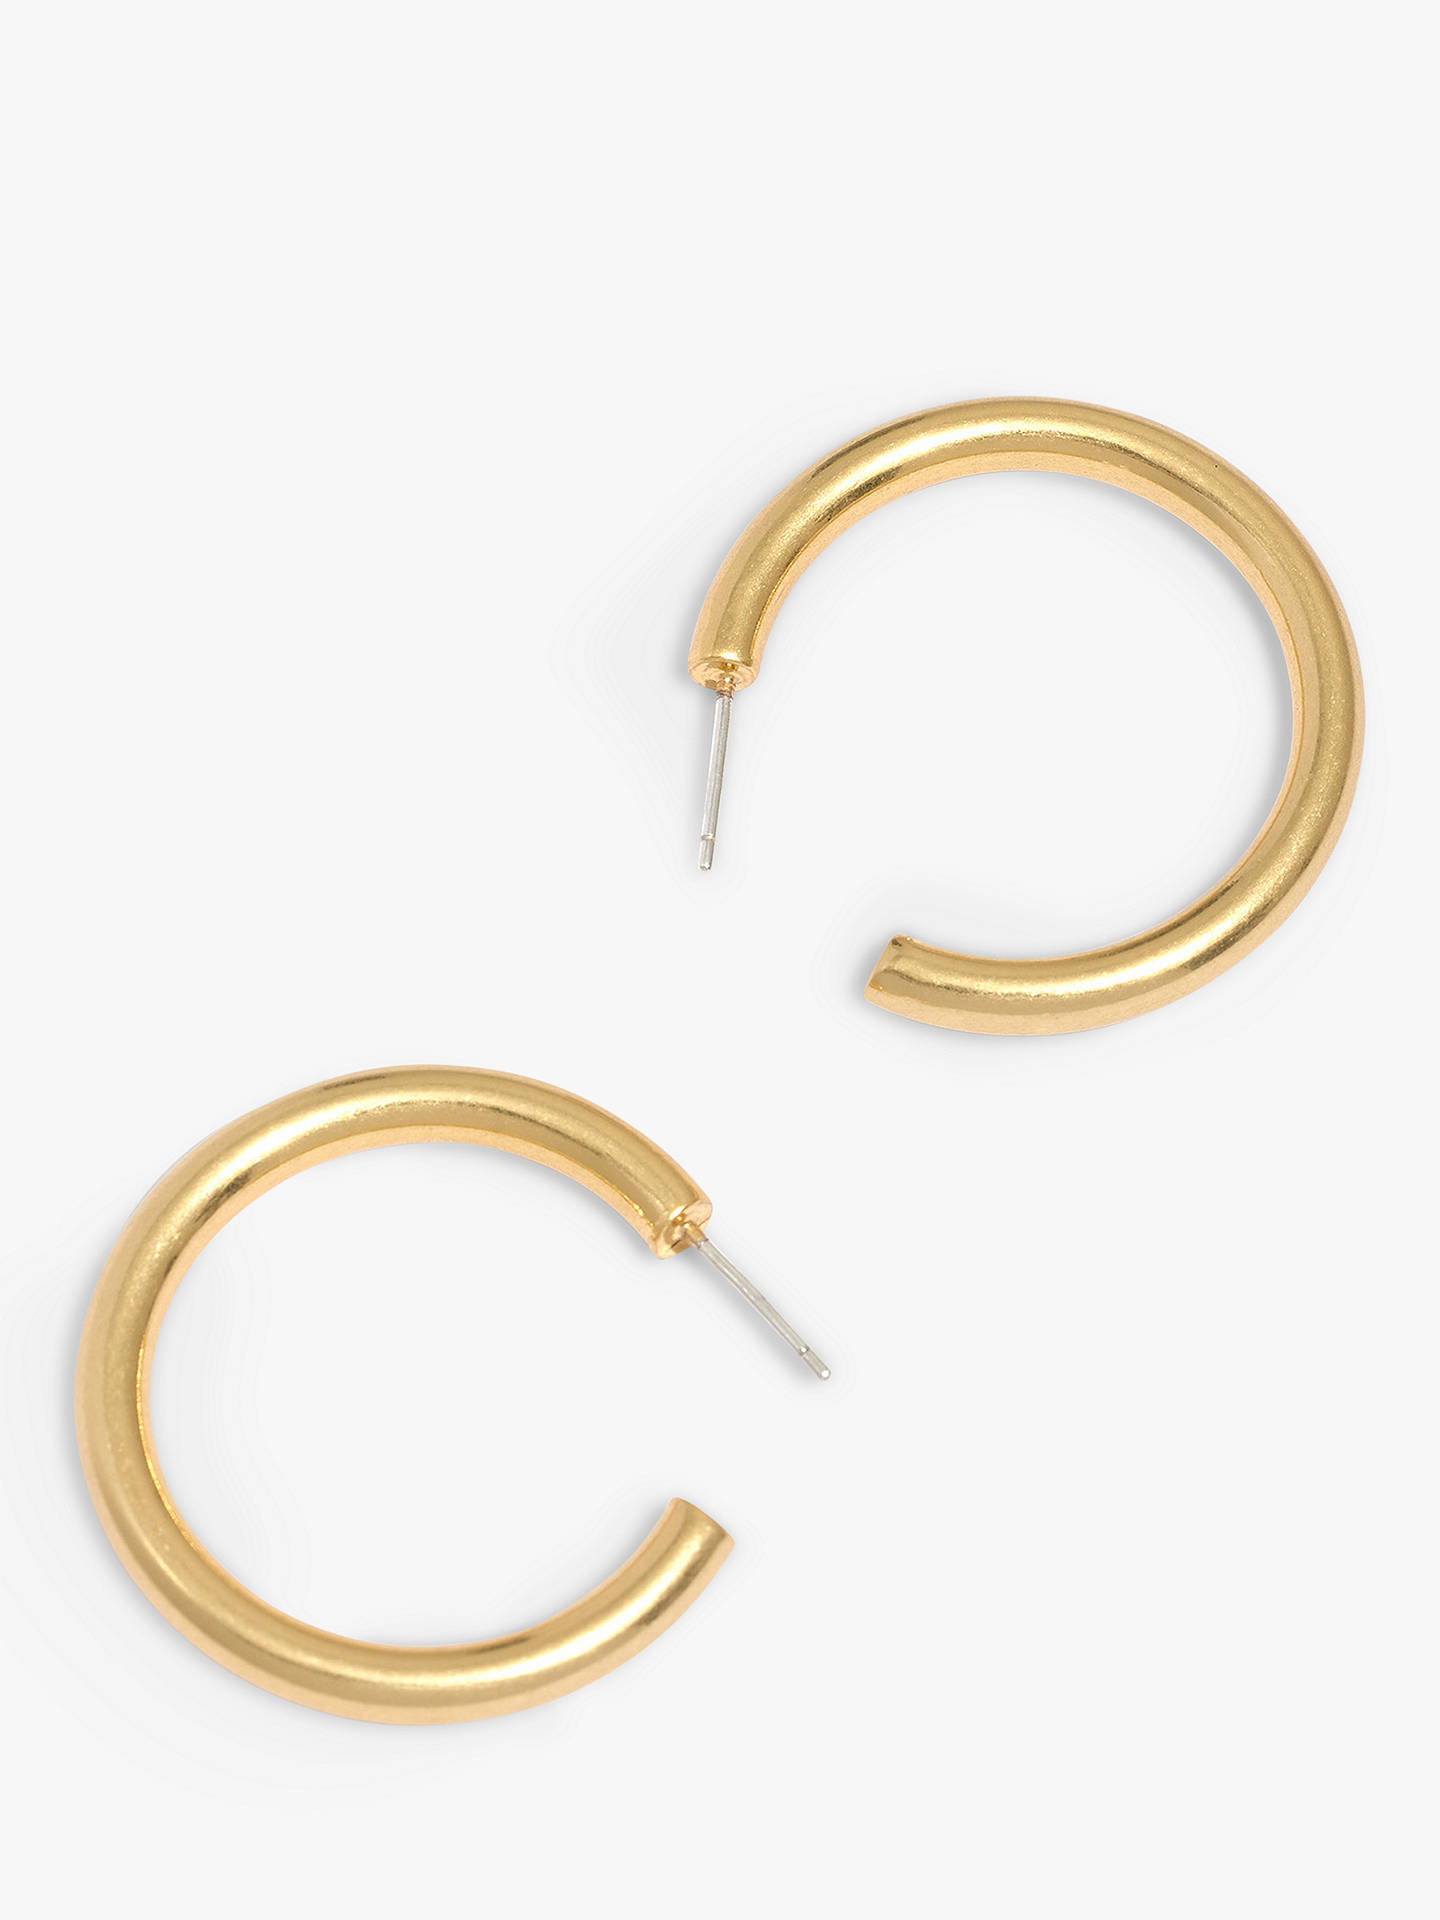 59d18ccf016e7a Buy Madewell Medium Chunky Hoop Earrings, Vintage Gold Online at  johnlewis.com